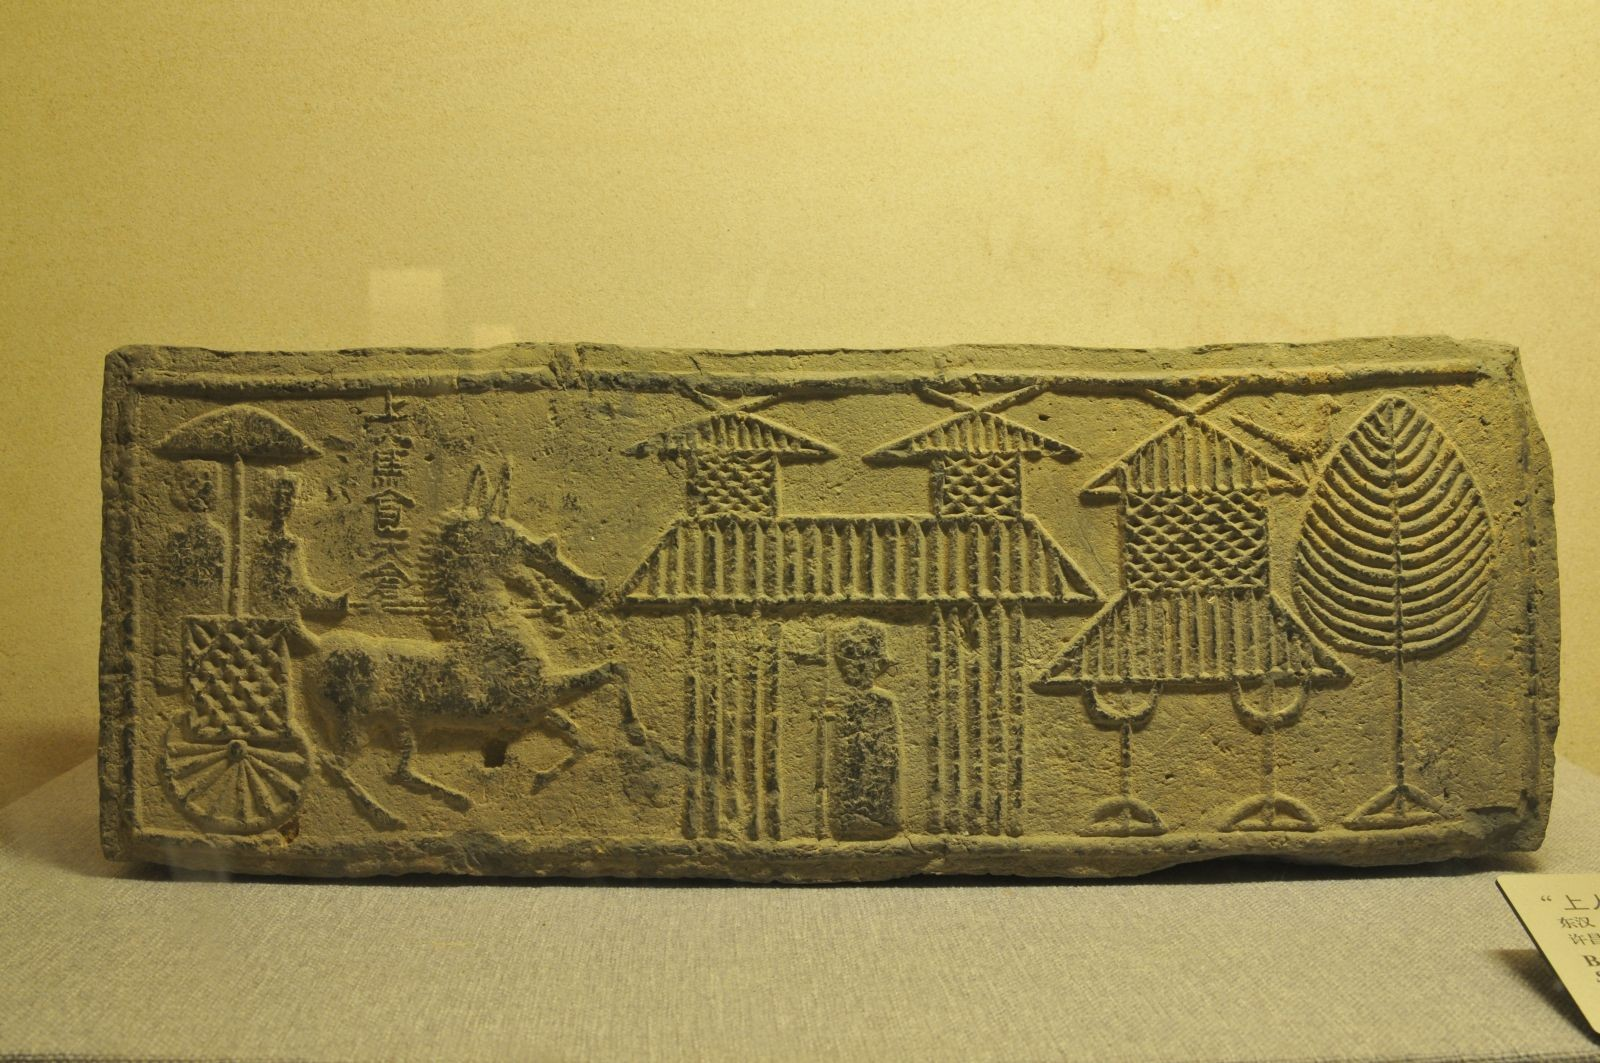 Brick with inscription and decorations - Eastern Han Dynasty (25-220 AD)